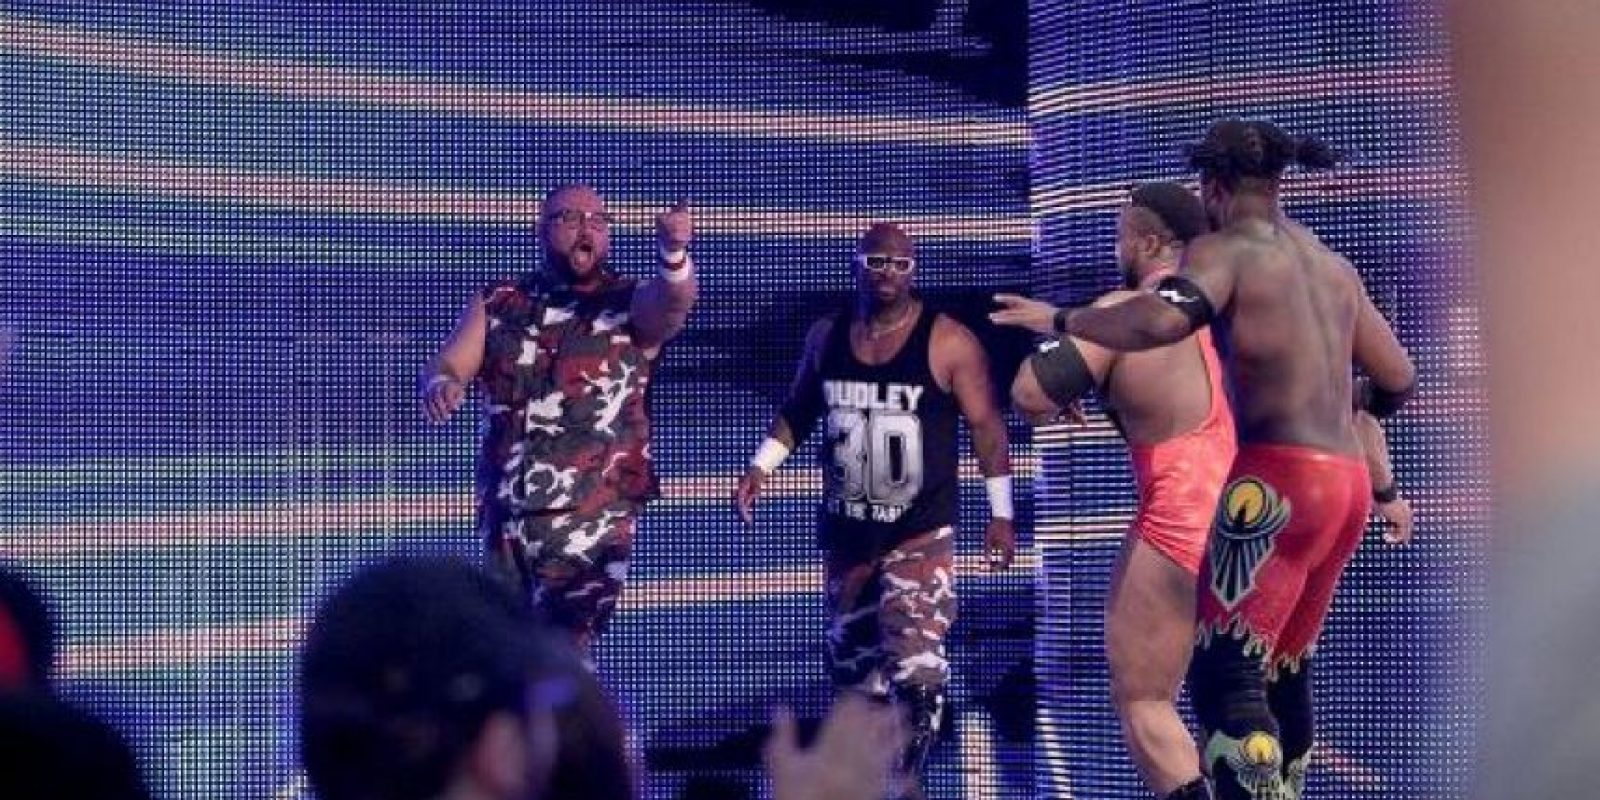 Por el Campeonato en Parejas, The New Day (Big E y Kofi Kingston) se medirán con The Dudley Boyz (Bubba Ray y D-Von)) Foto: WWE